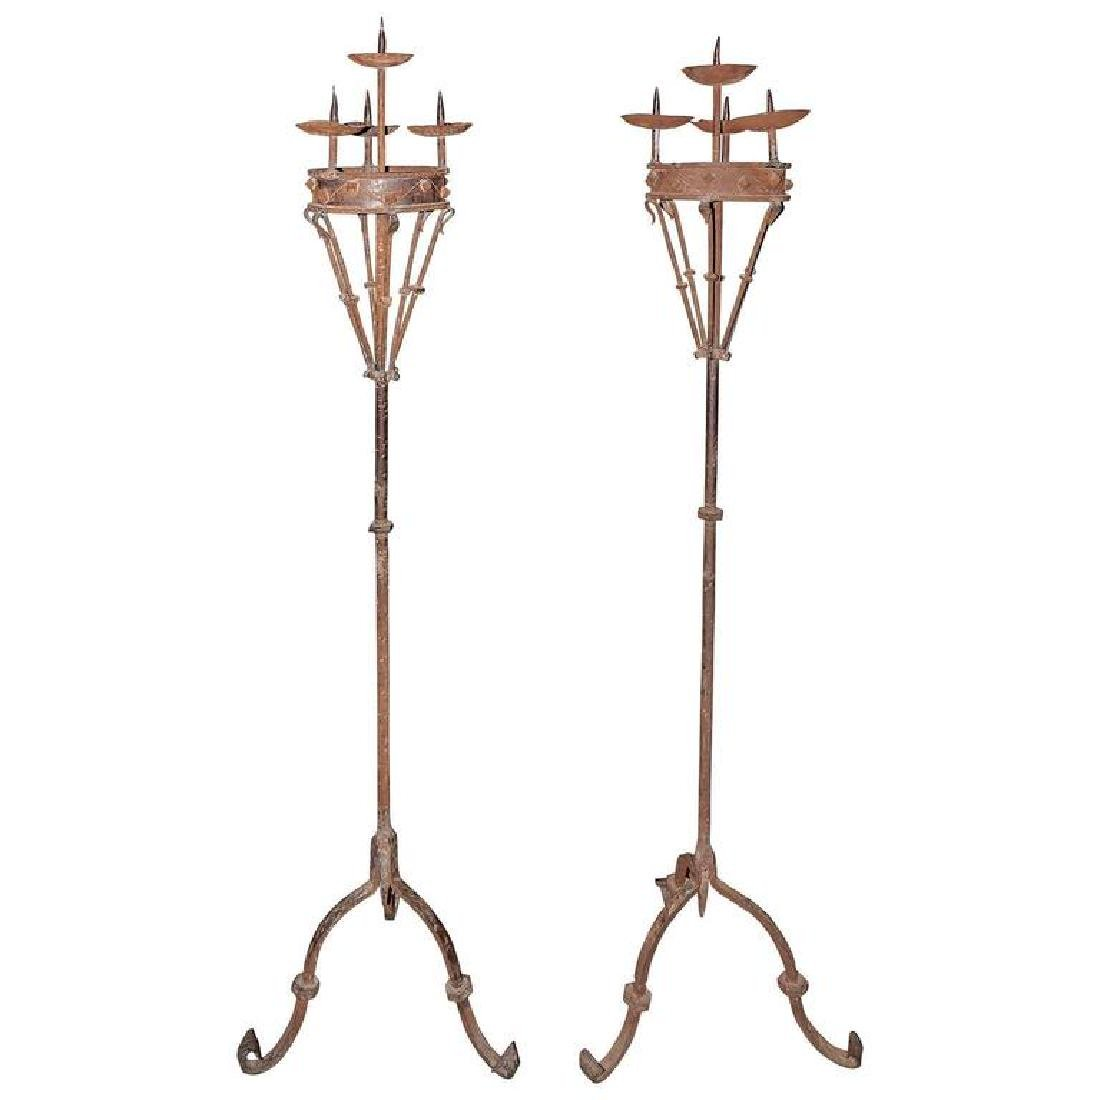 Pair of Early 19th Century Spanish Forged Iron